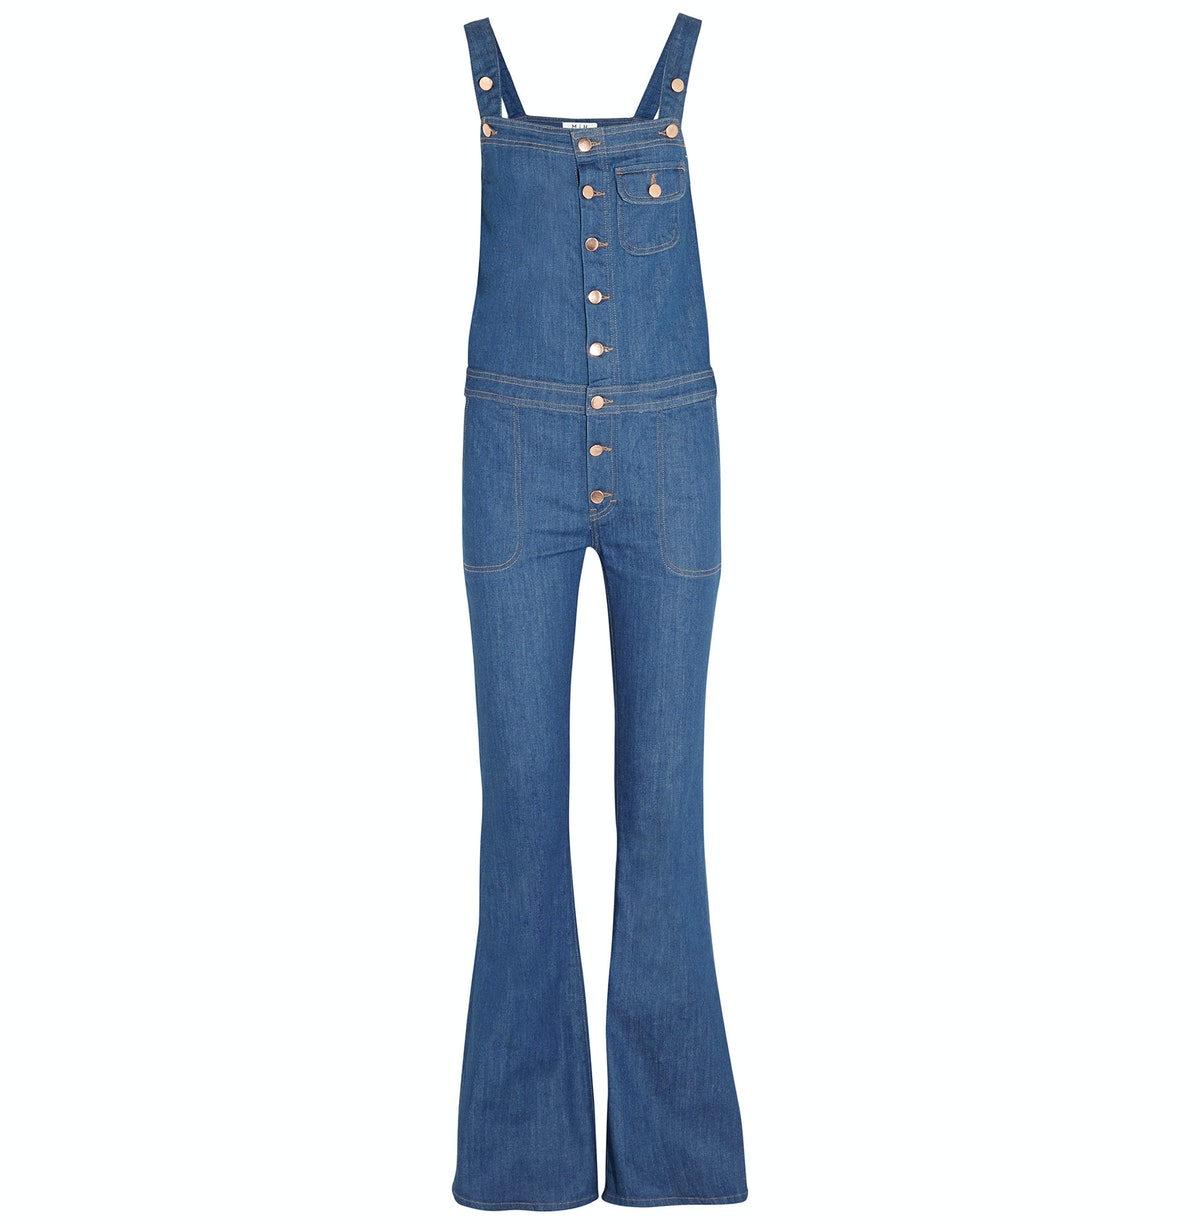 Mih Jeans overall